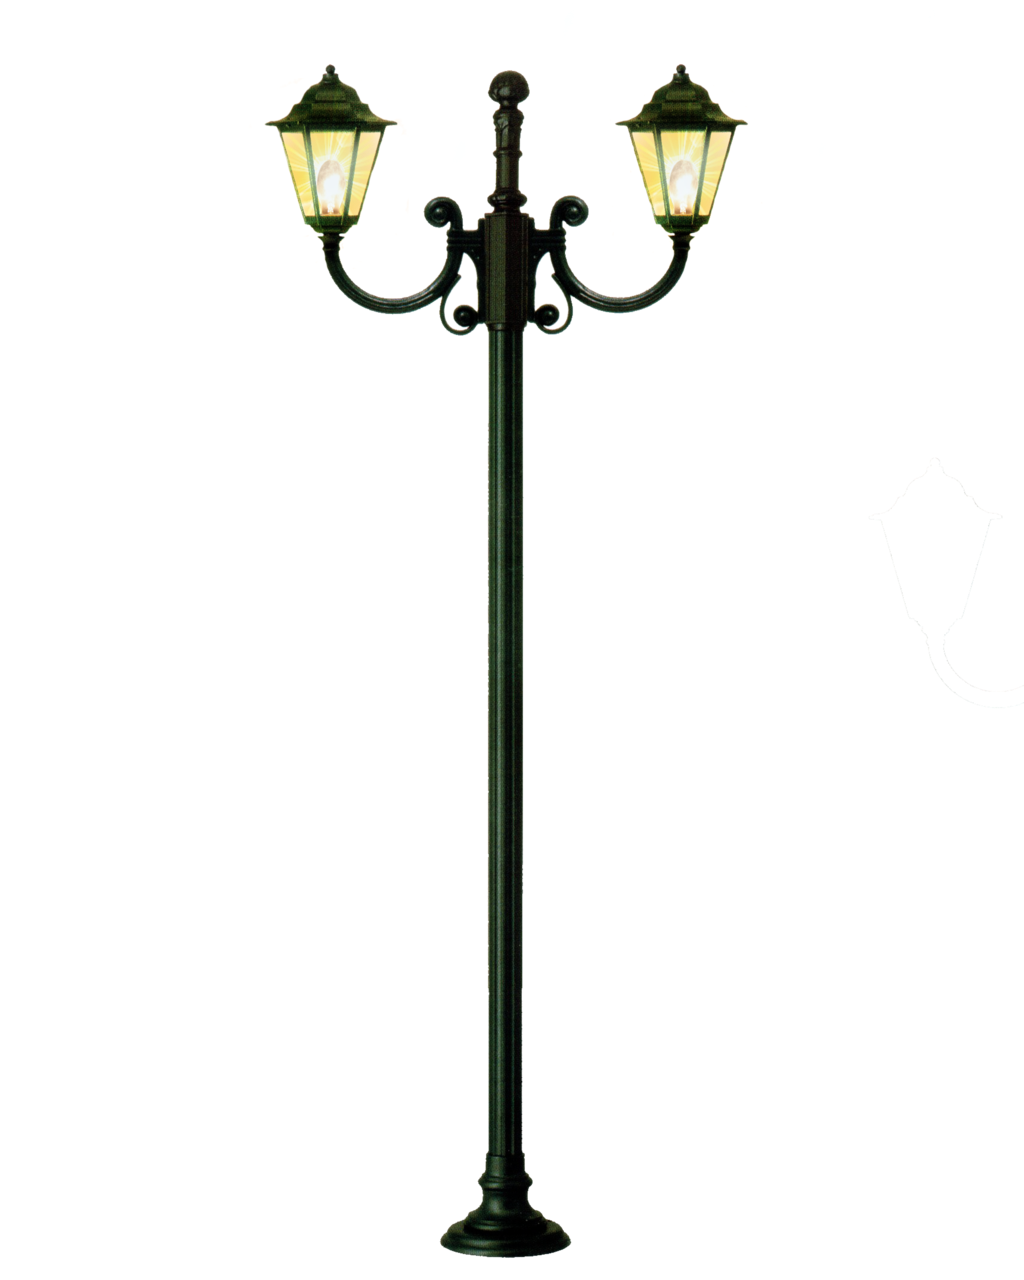 Light street streetlight freetoedit. Lamp clipart night lamp